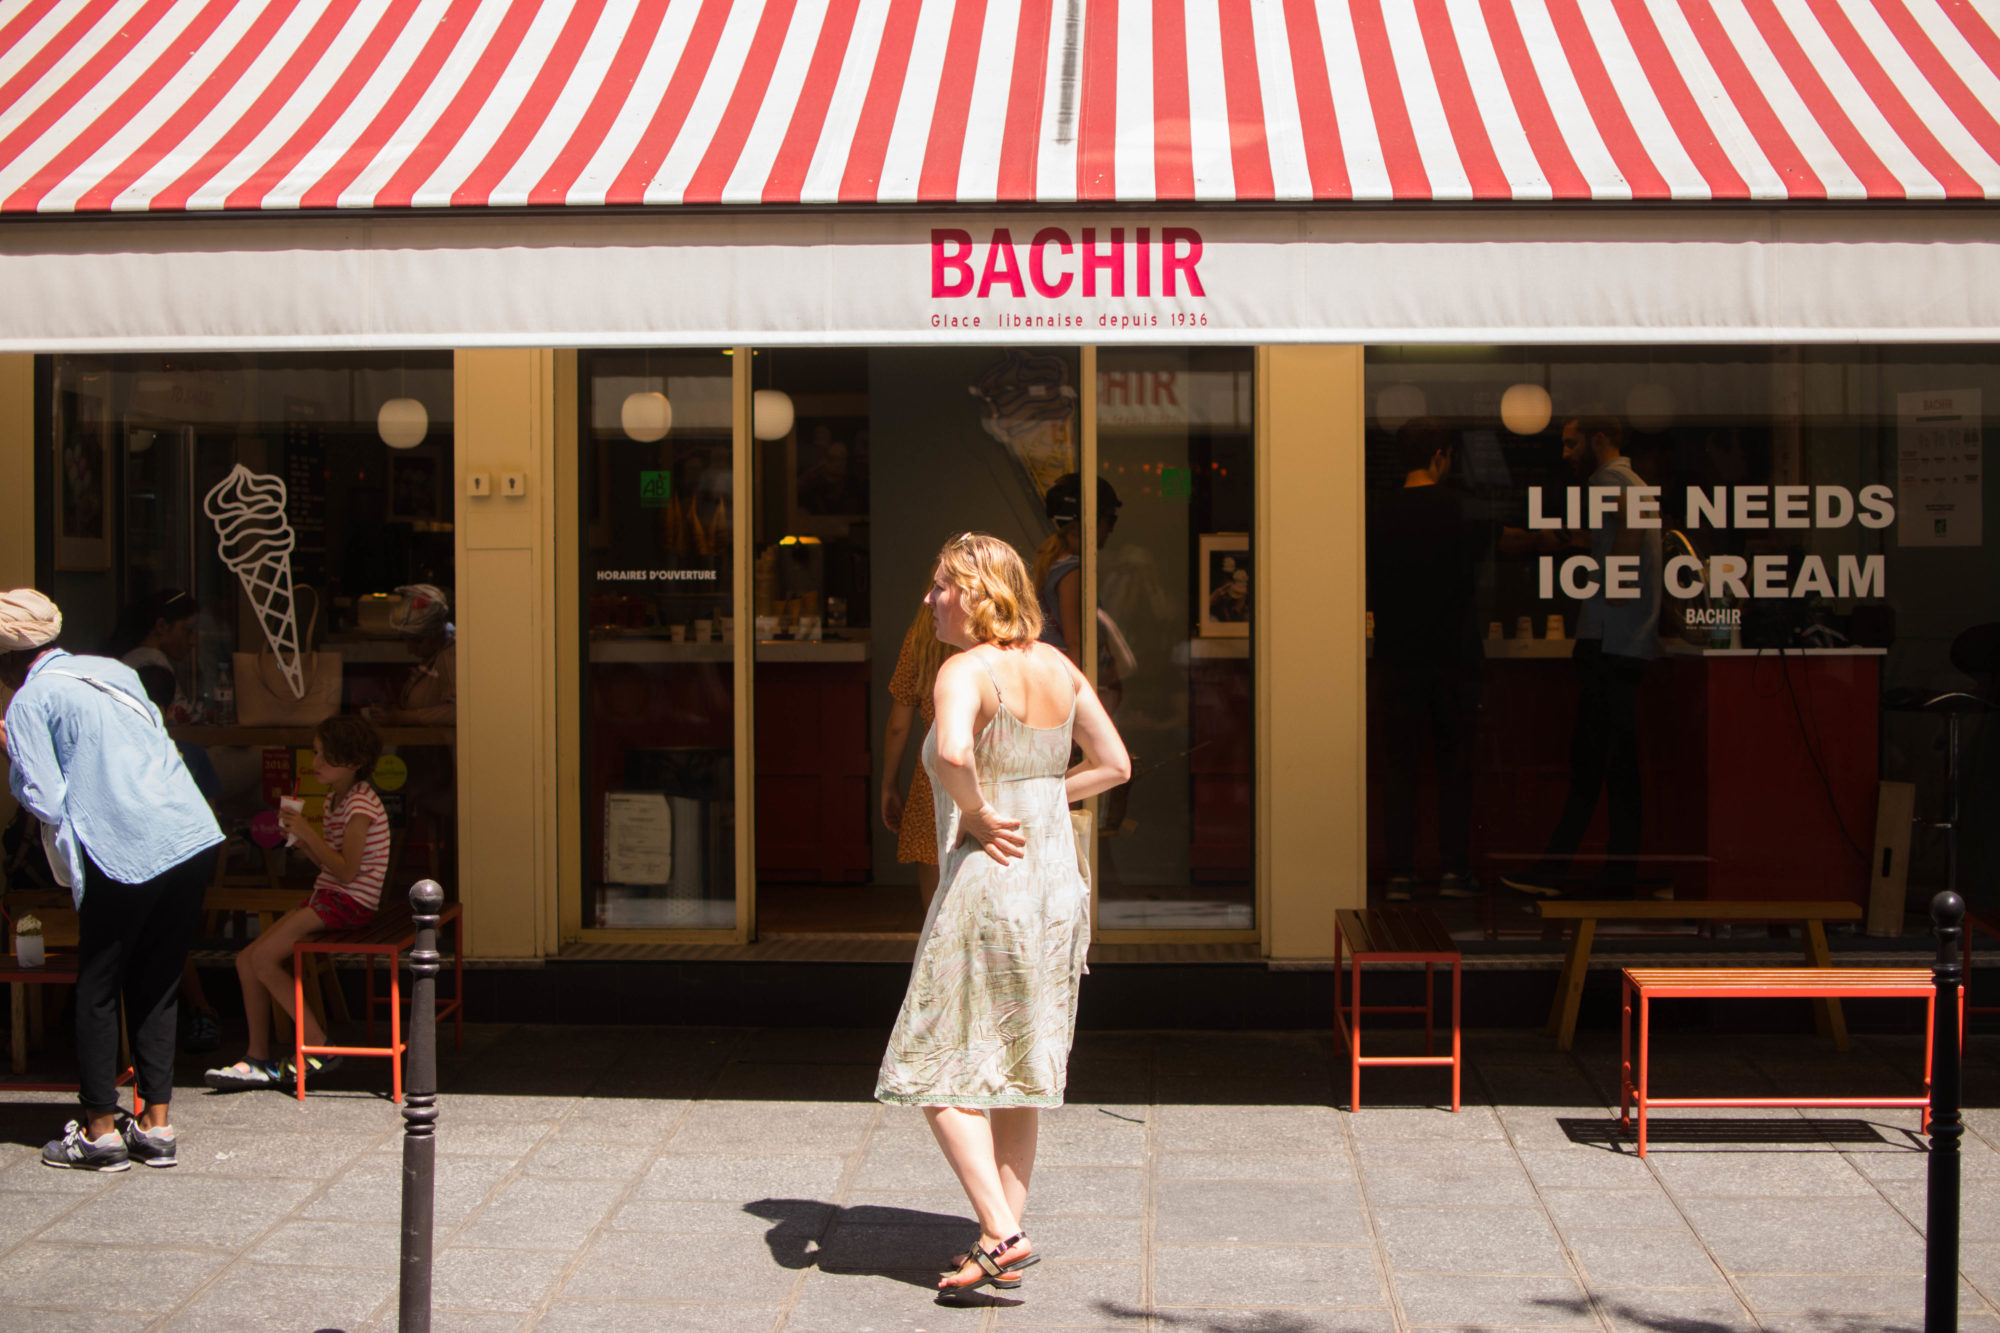 The exterior of Bachir ice cream shop in Paris with its stripy red and white awning.